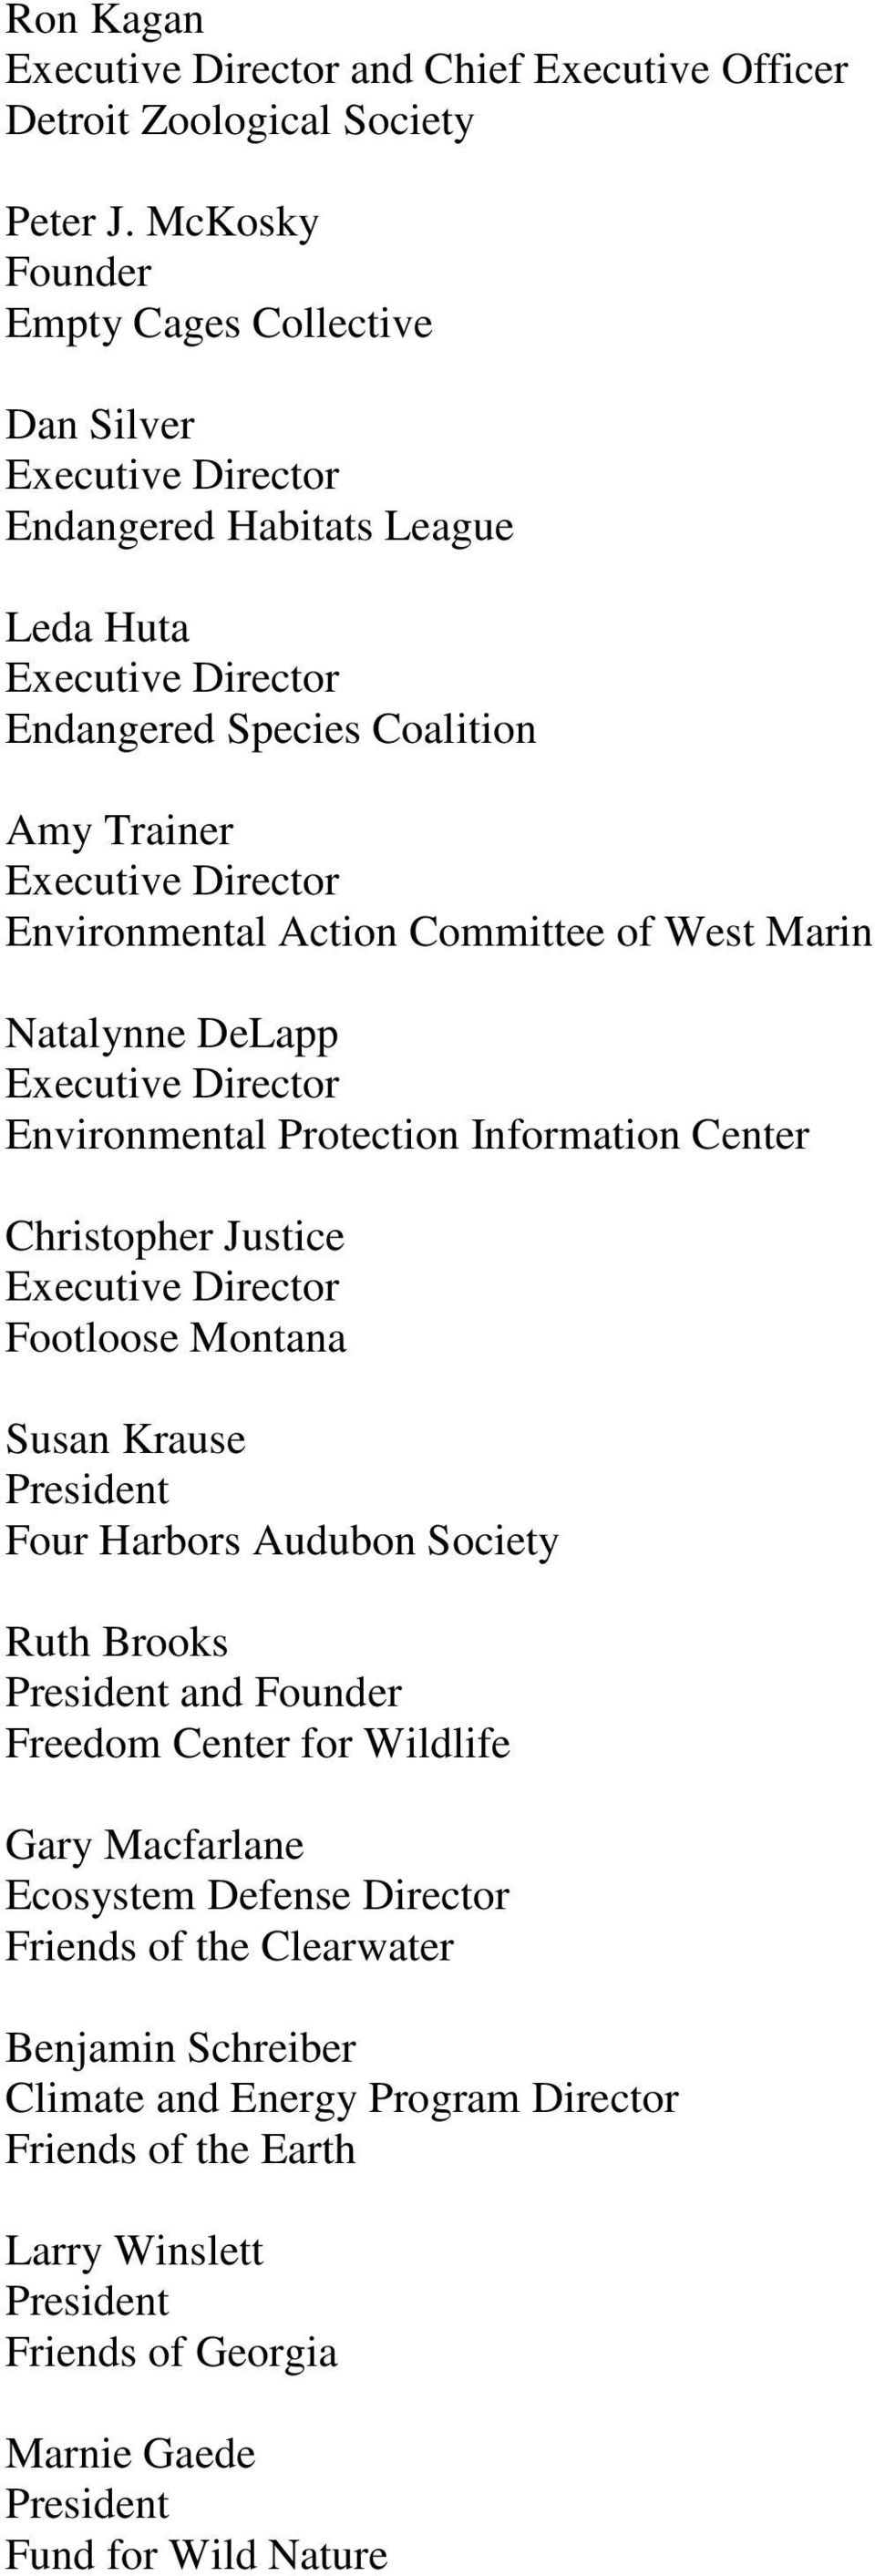 West Marin Natalynne DeLapp Environmental Protection Information Center Christopher Justice Footloose Montana Susan Krause Four Harbors Audubon Society Ruth